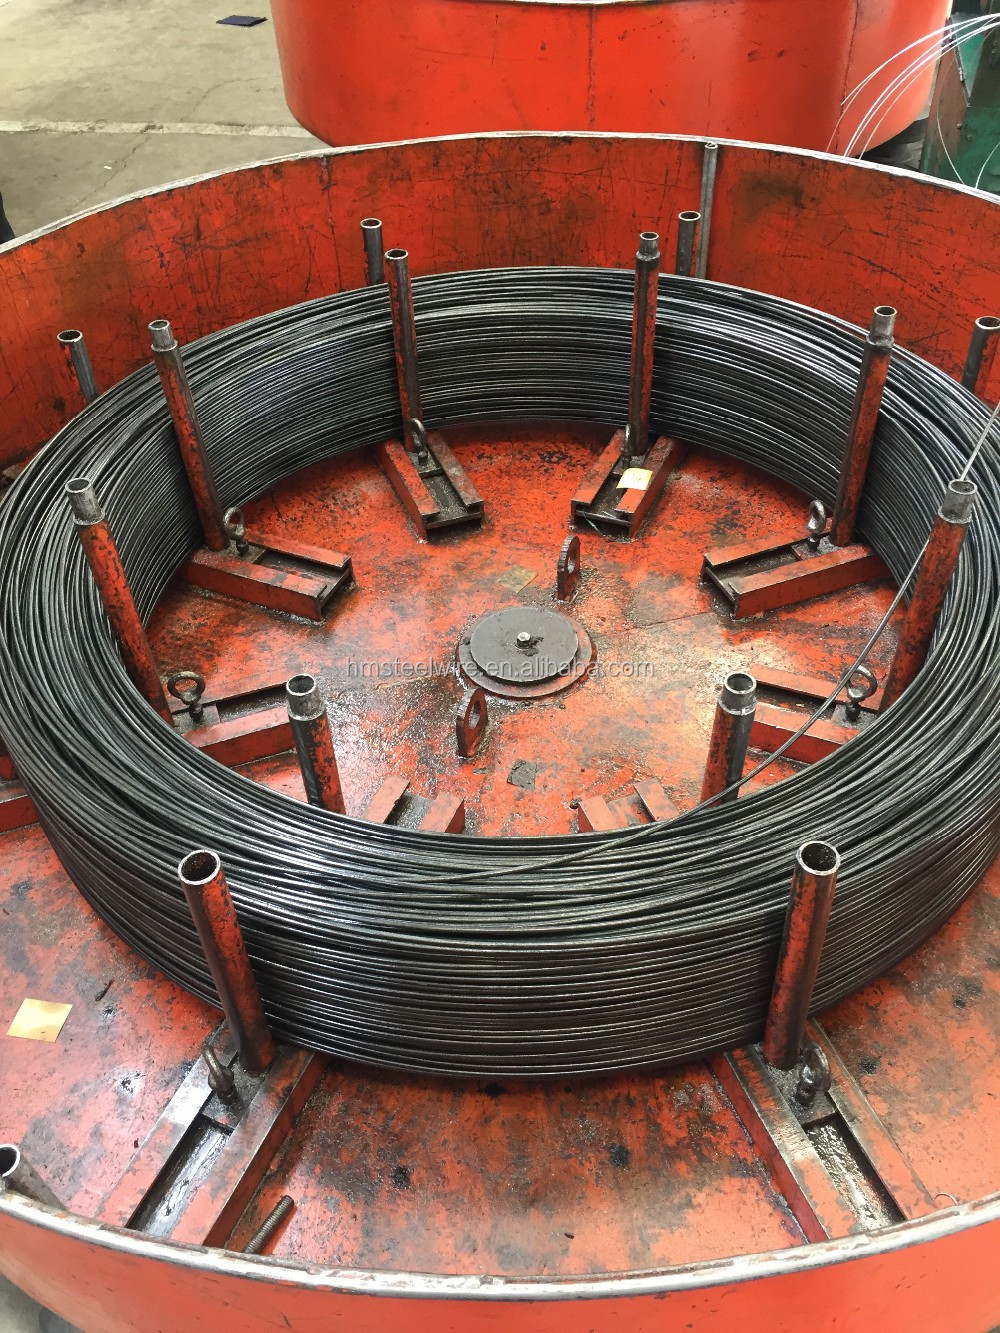 Oil tempered spring wire alloy spring steel wire 60Si2Mn/II92600/SUP7/60SiCr7/61SiCr7